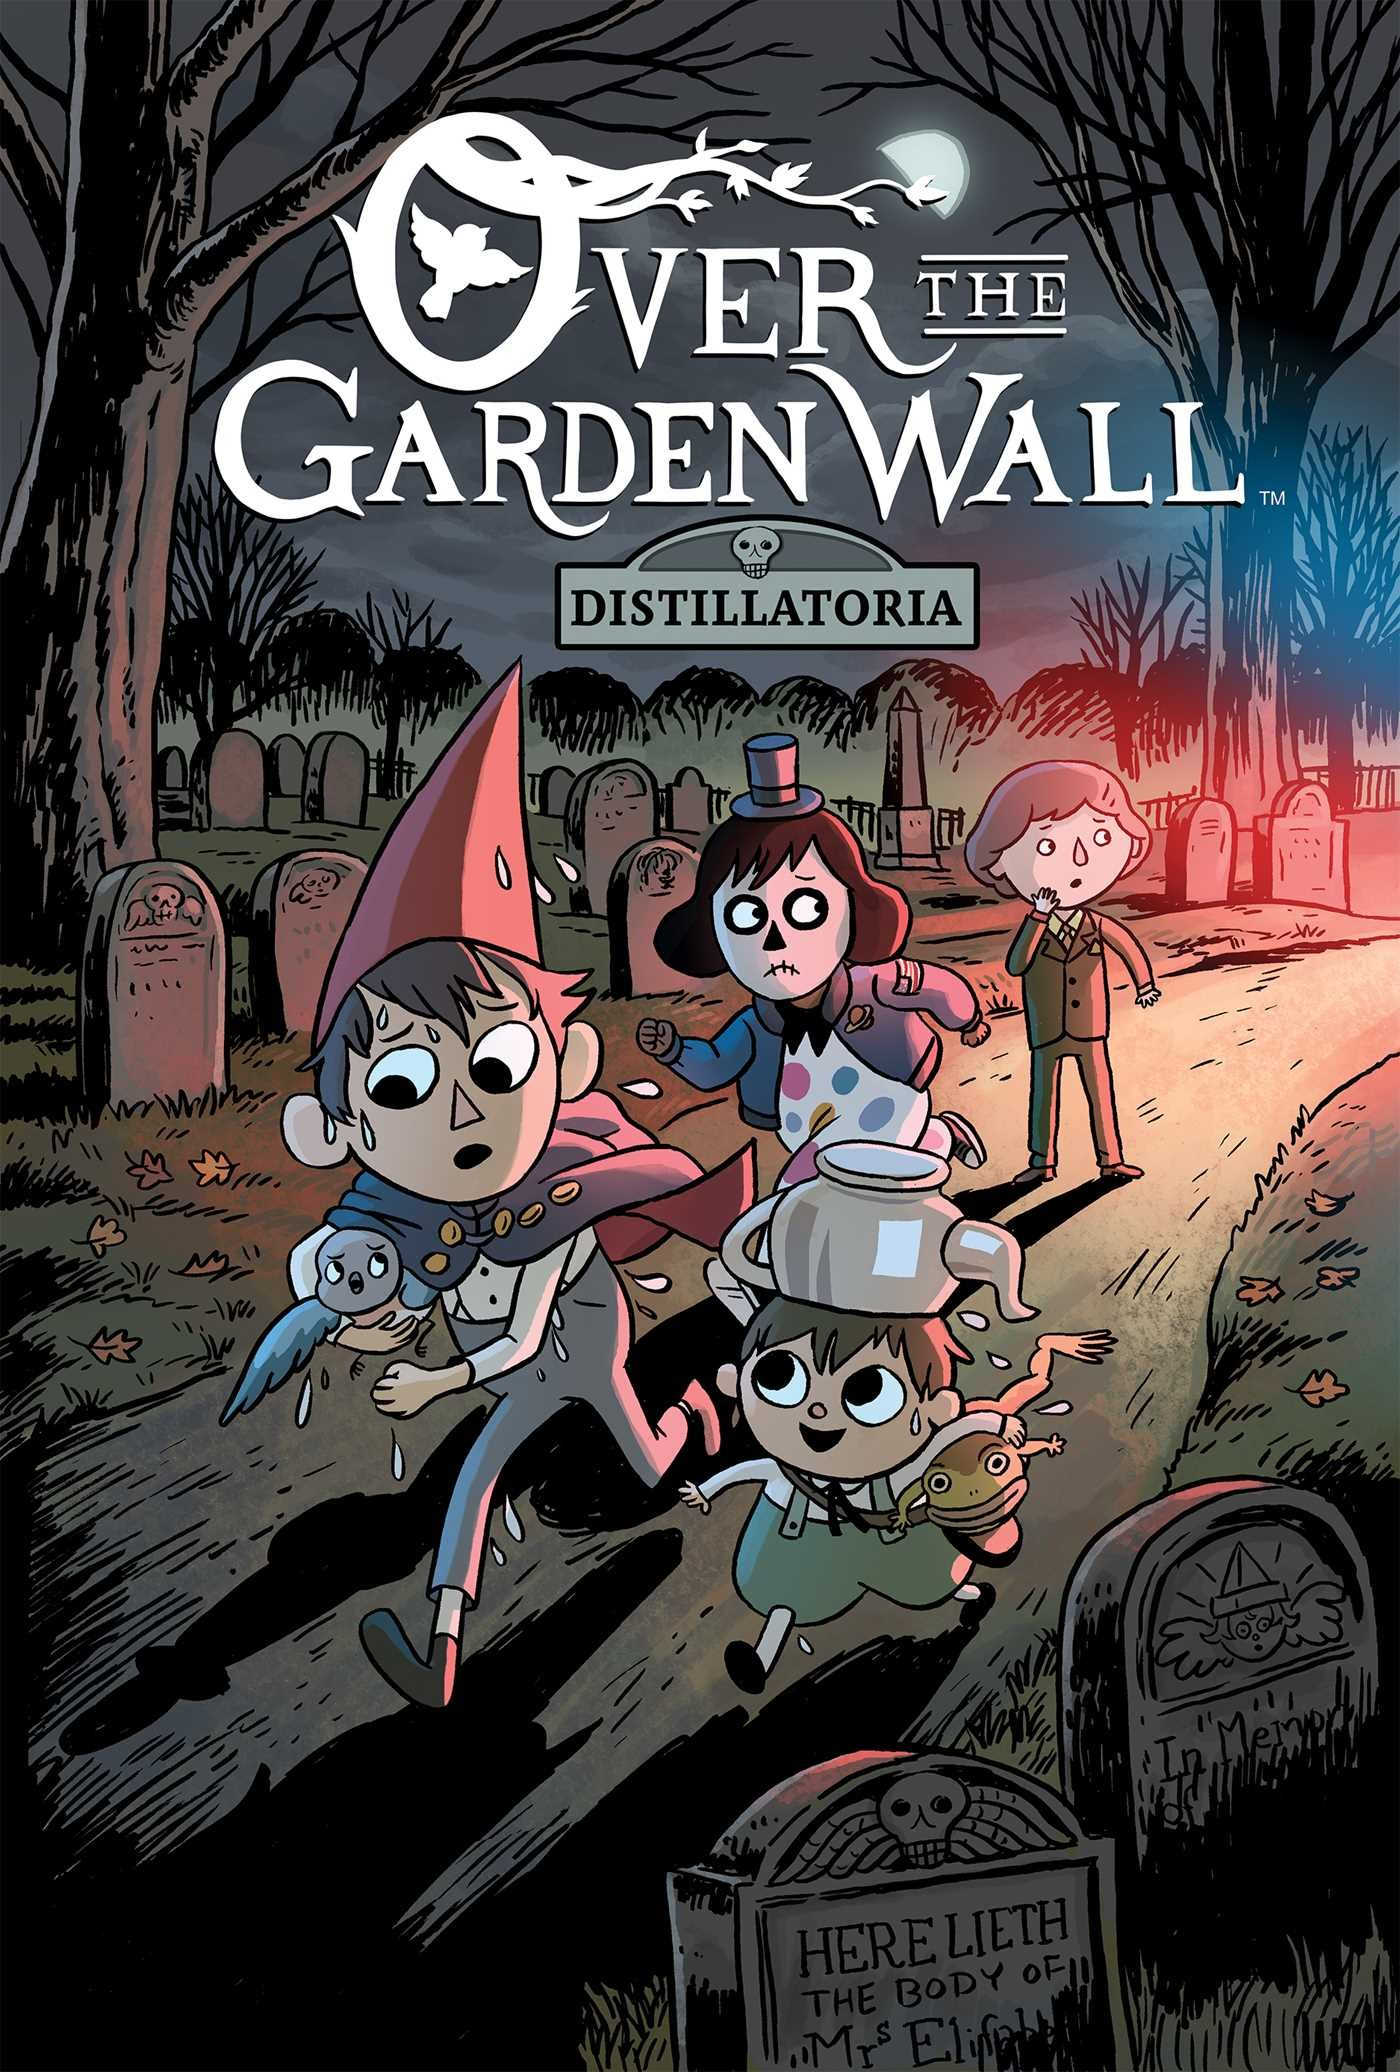 Over the Garden Wall Distillatoria.jpg